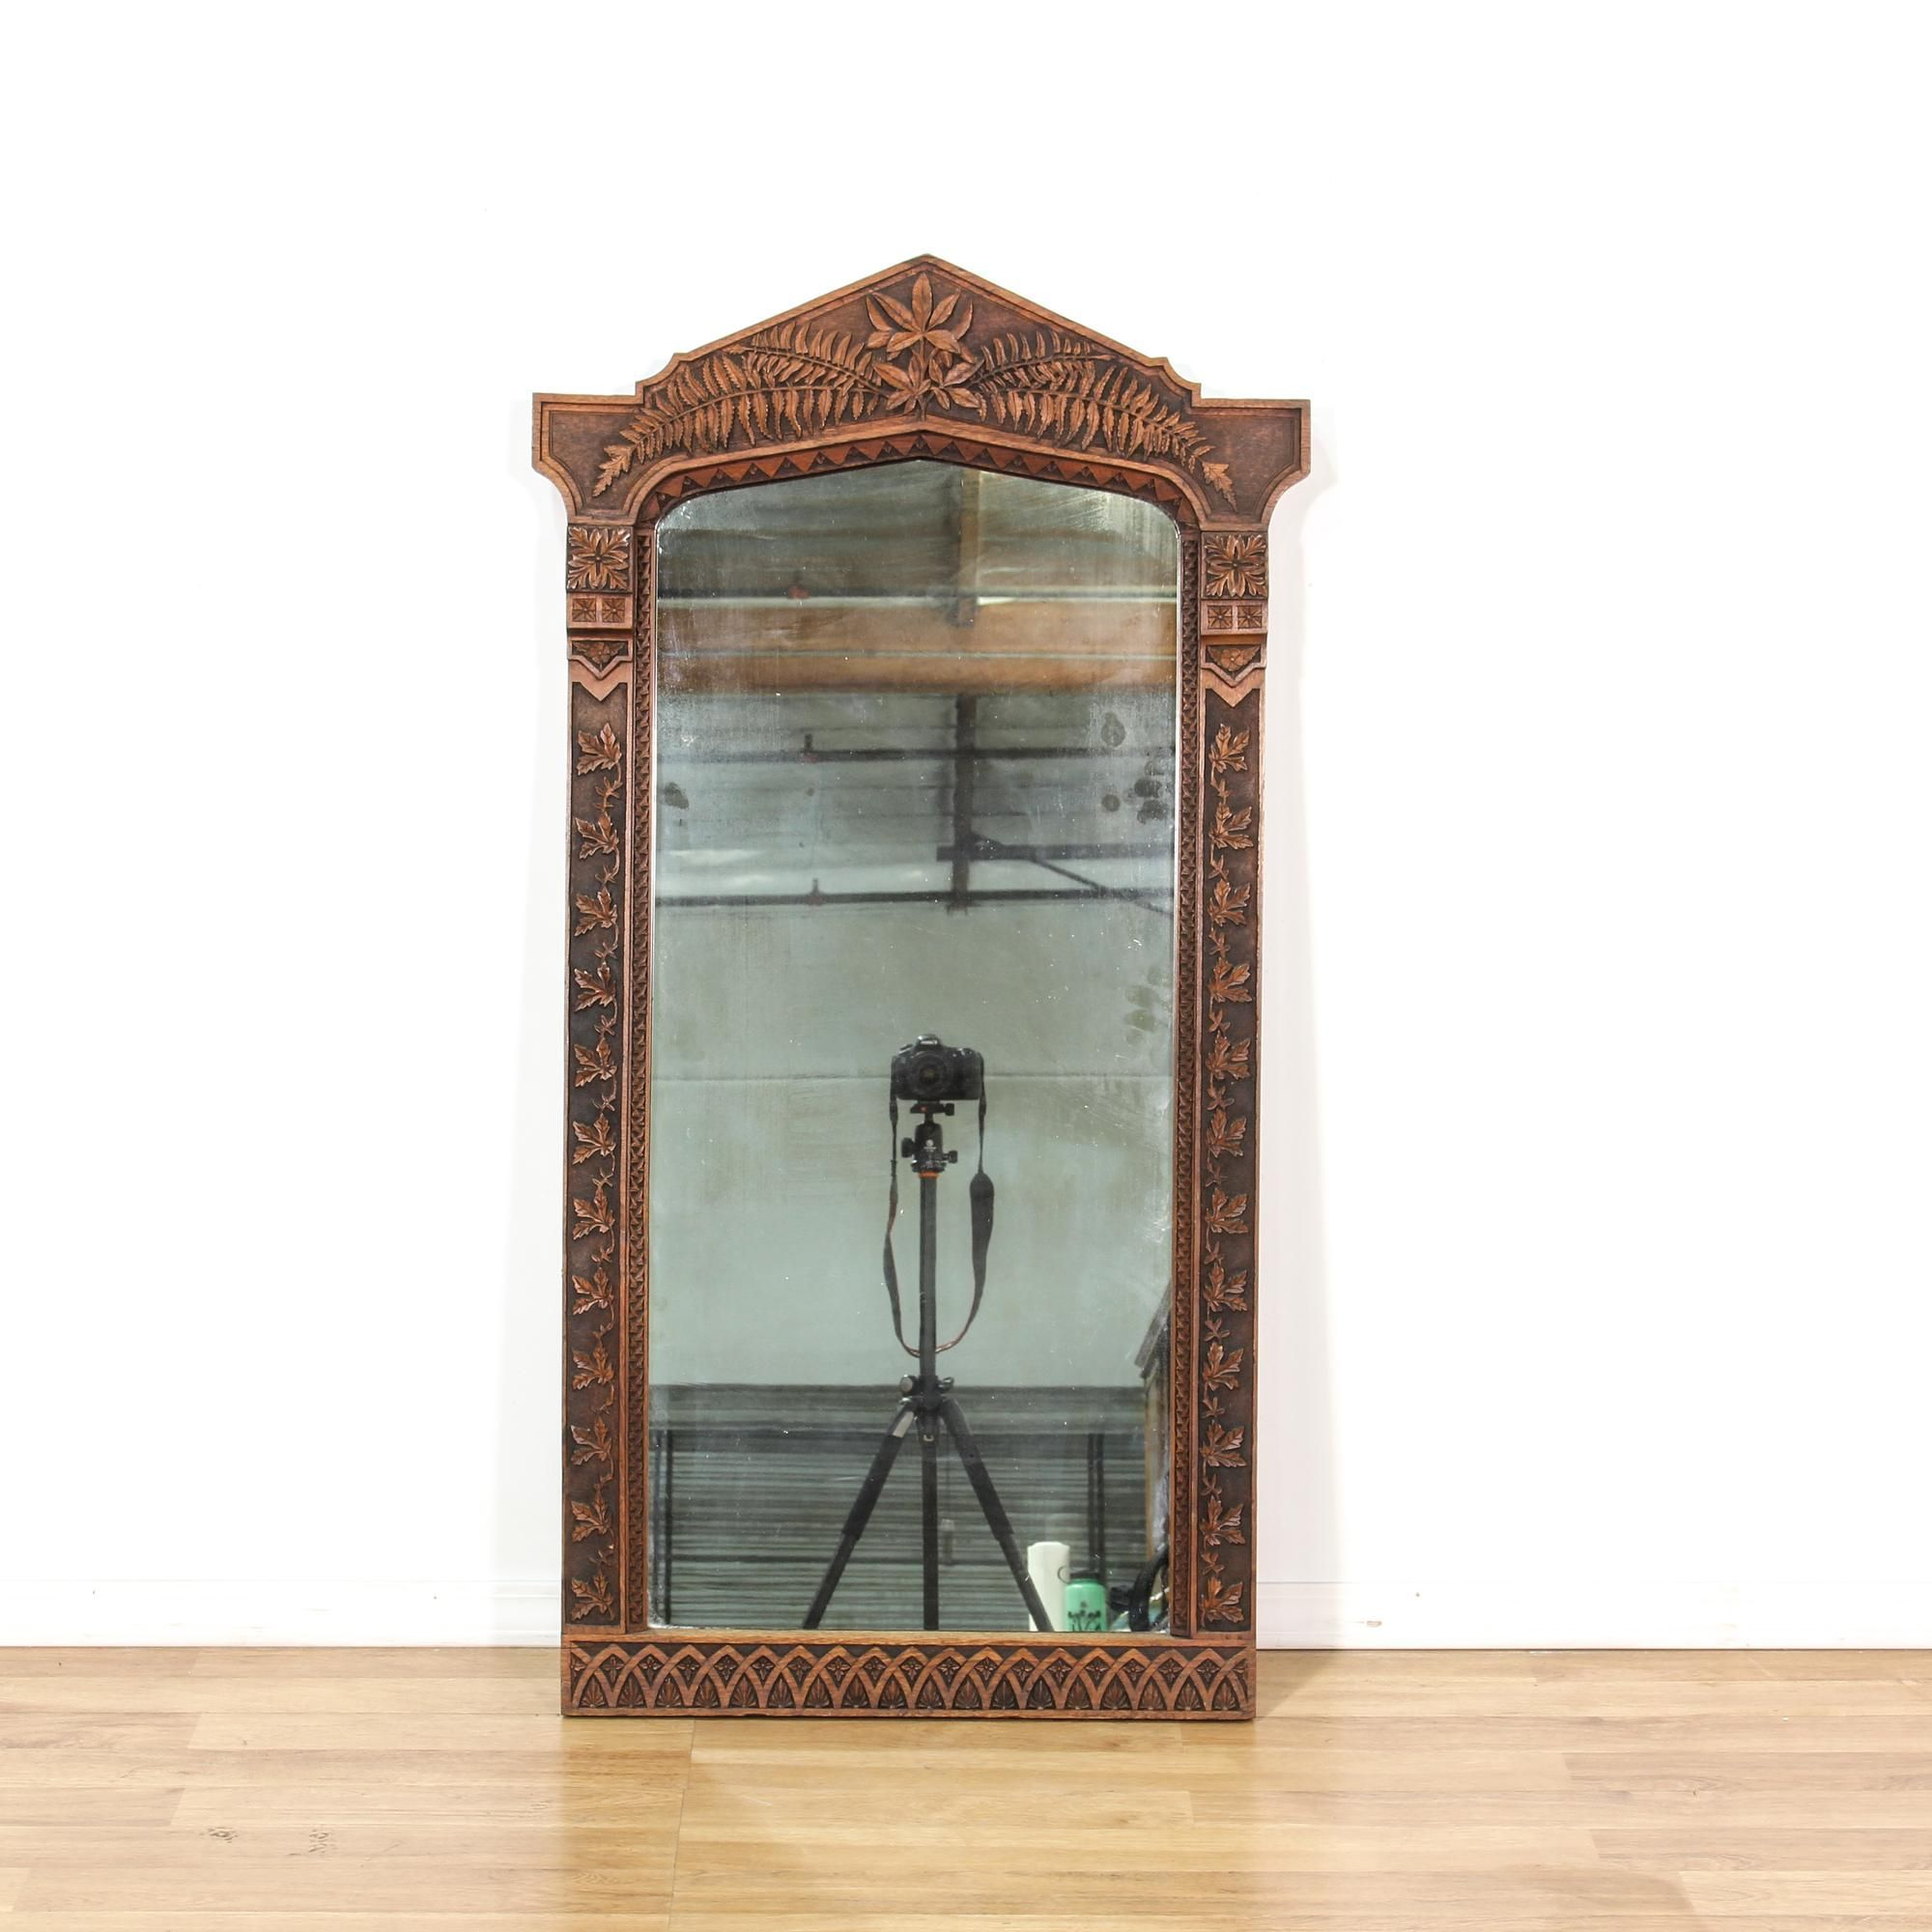 Hallway furniture with mirror  This accent mirror is featured in a solid wood with a rustic dark